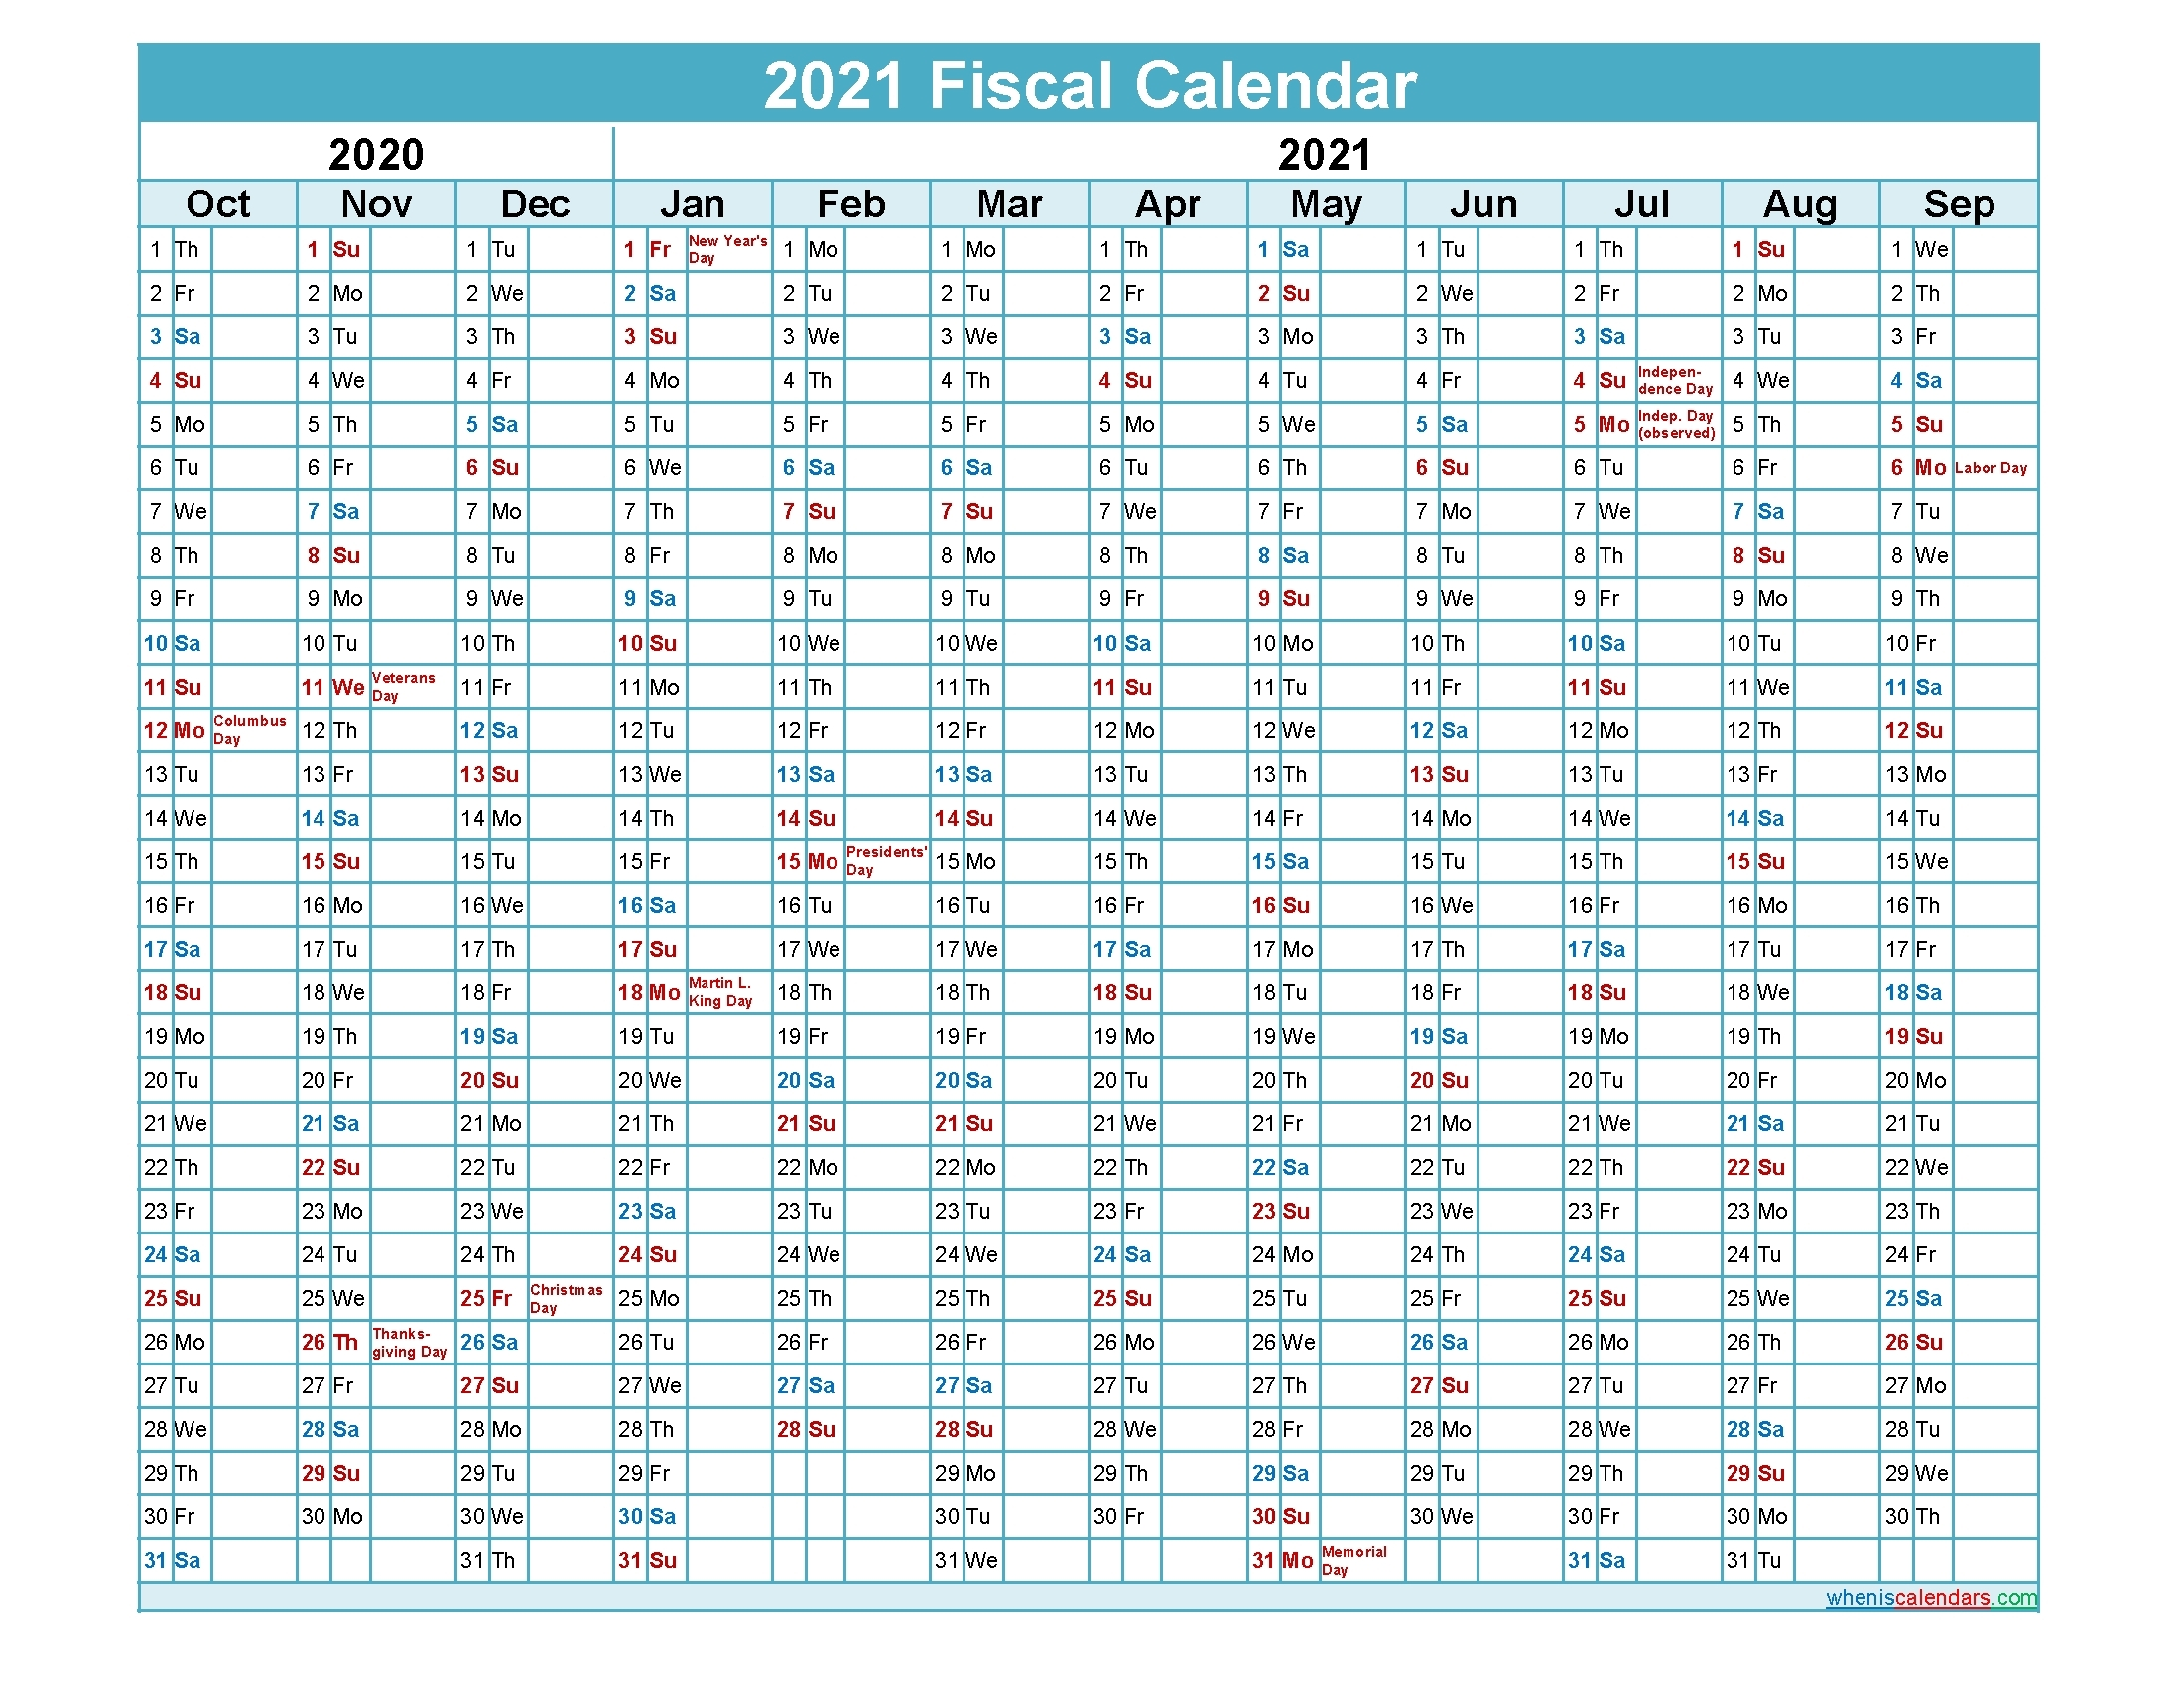 Collect Financial Year Week Numbers